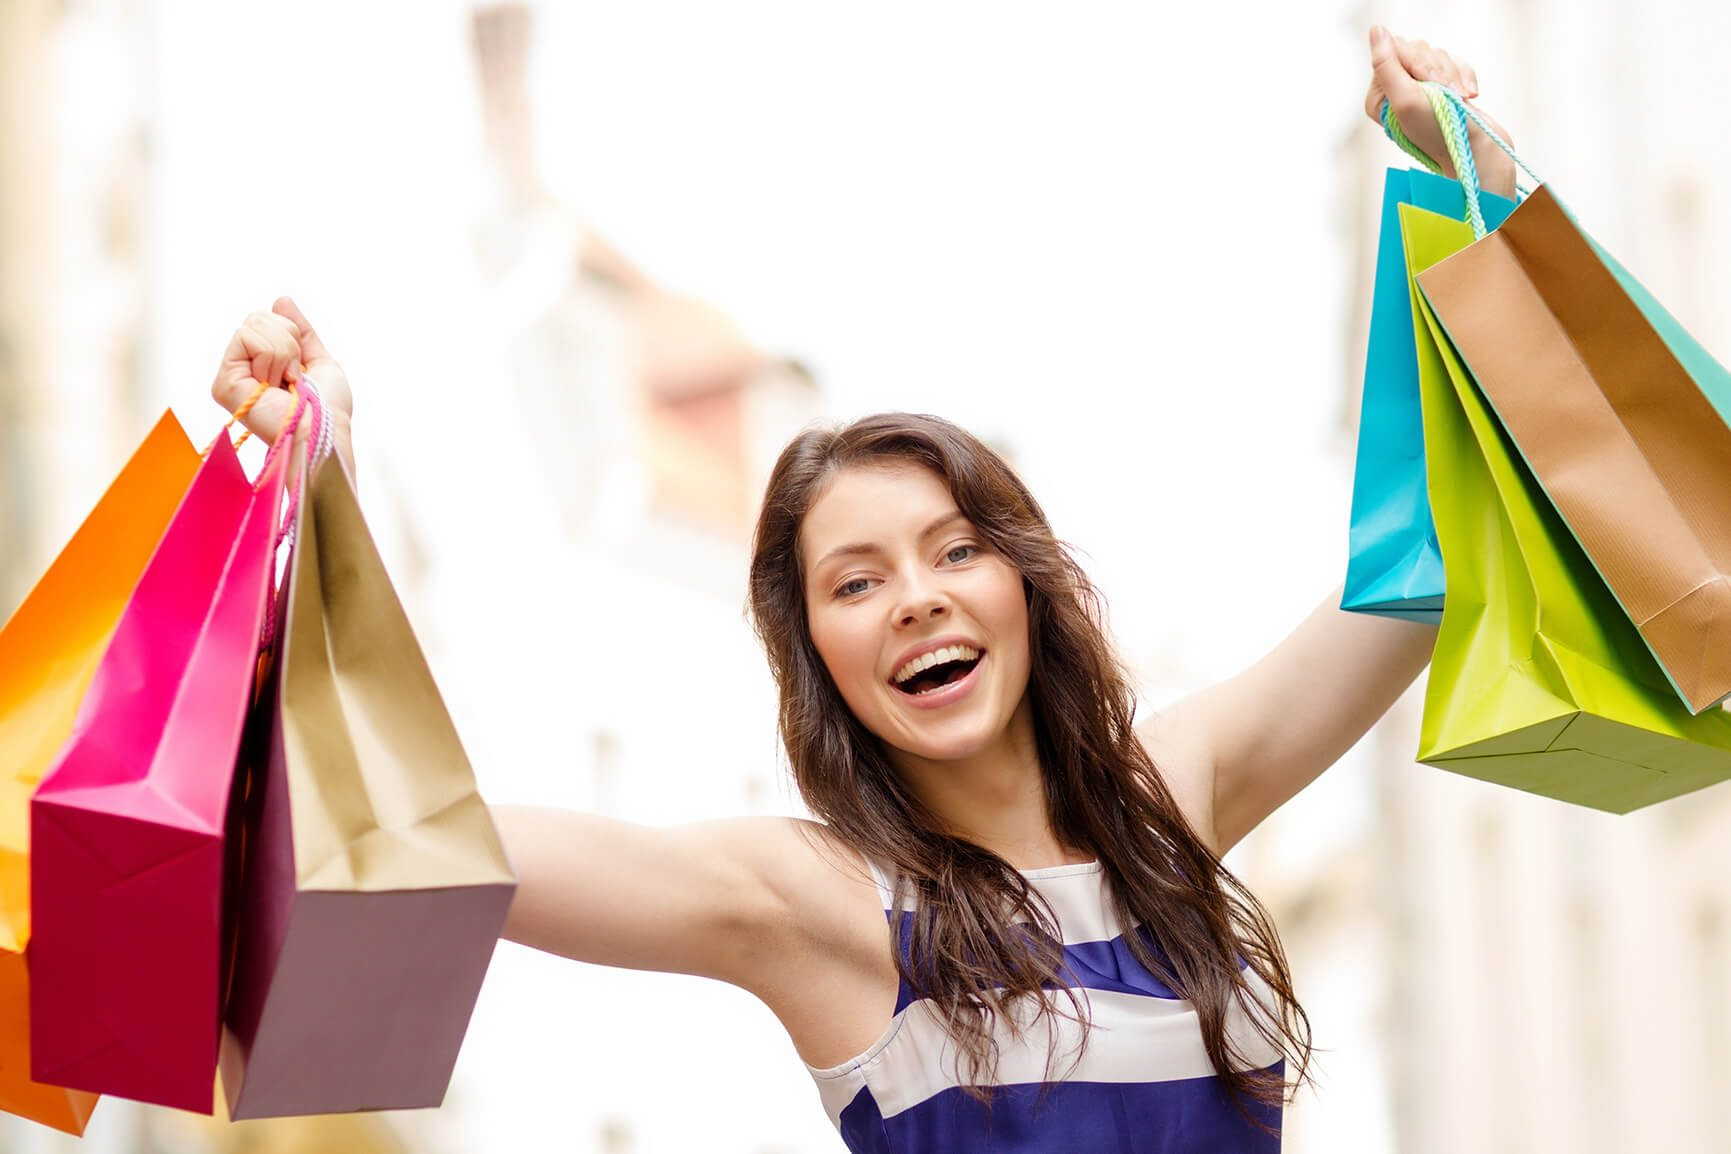 A female tourist who has shopped at the clothing boutiques at the Jan Thiel Beach.